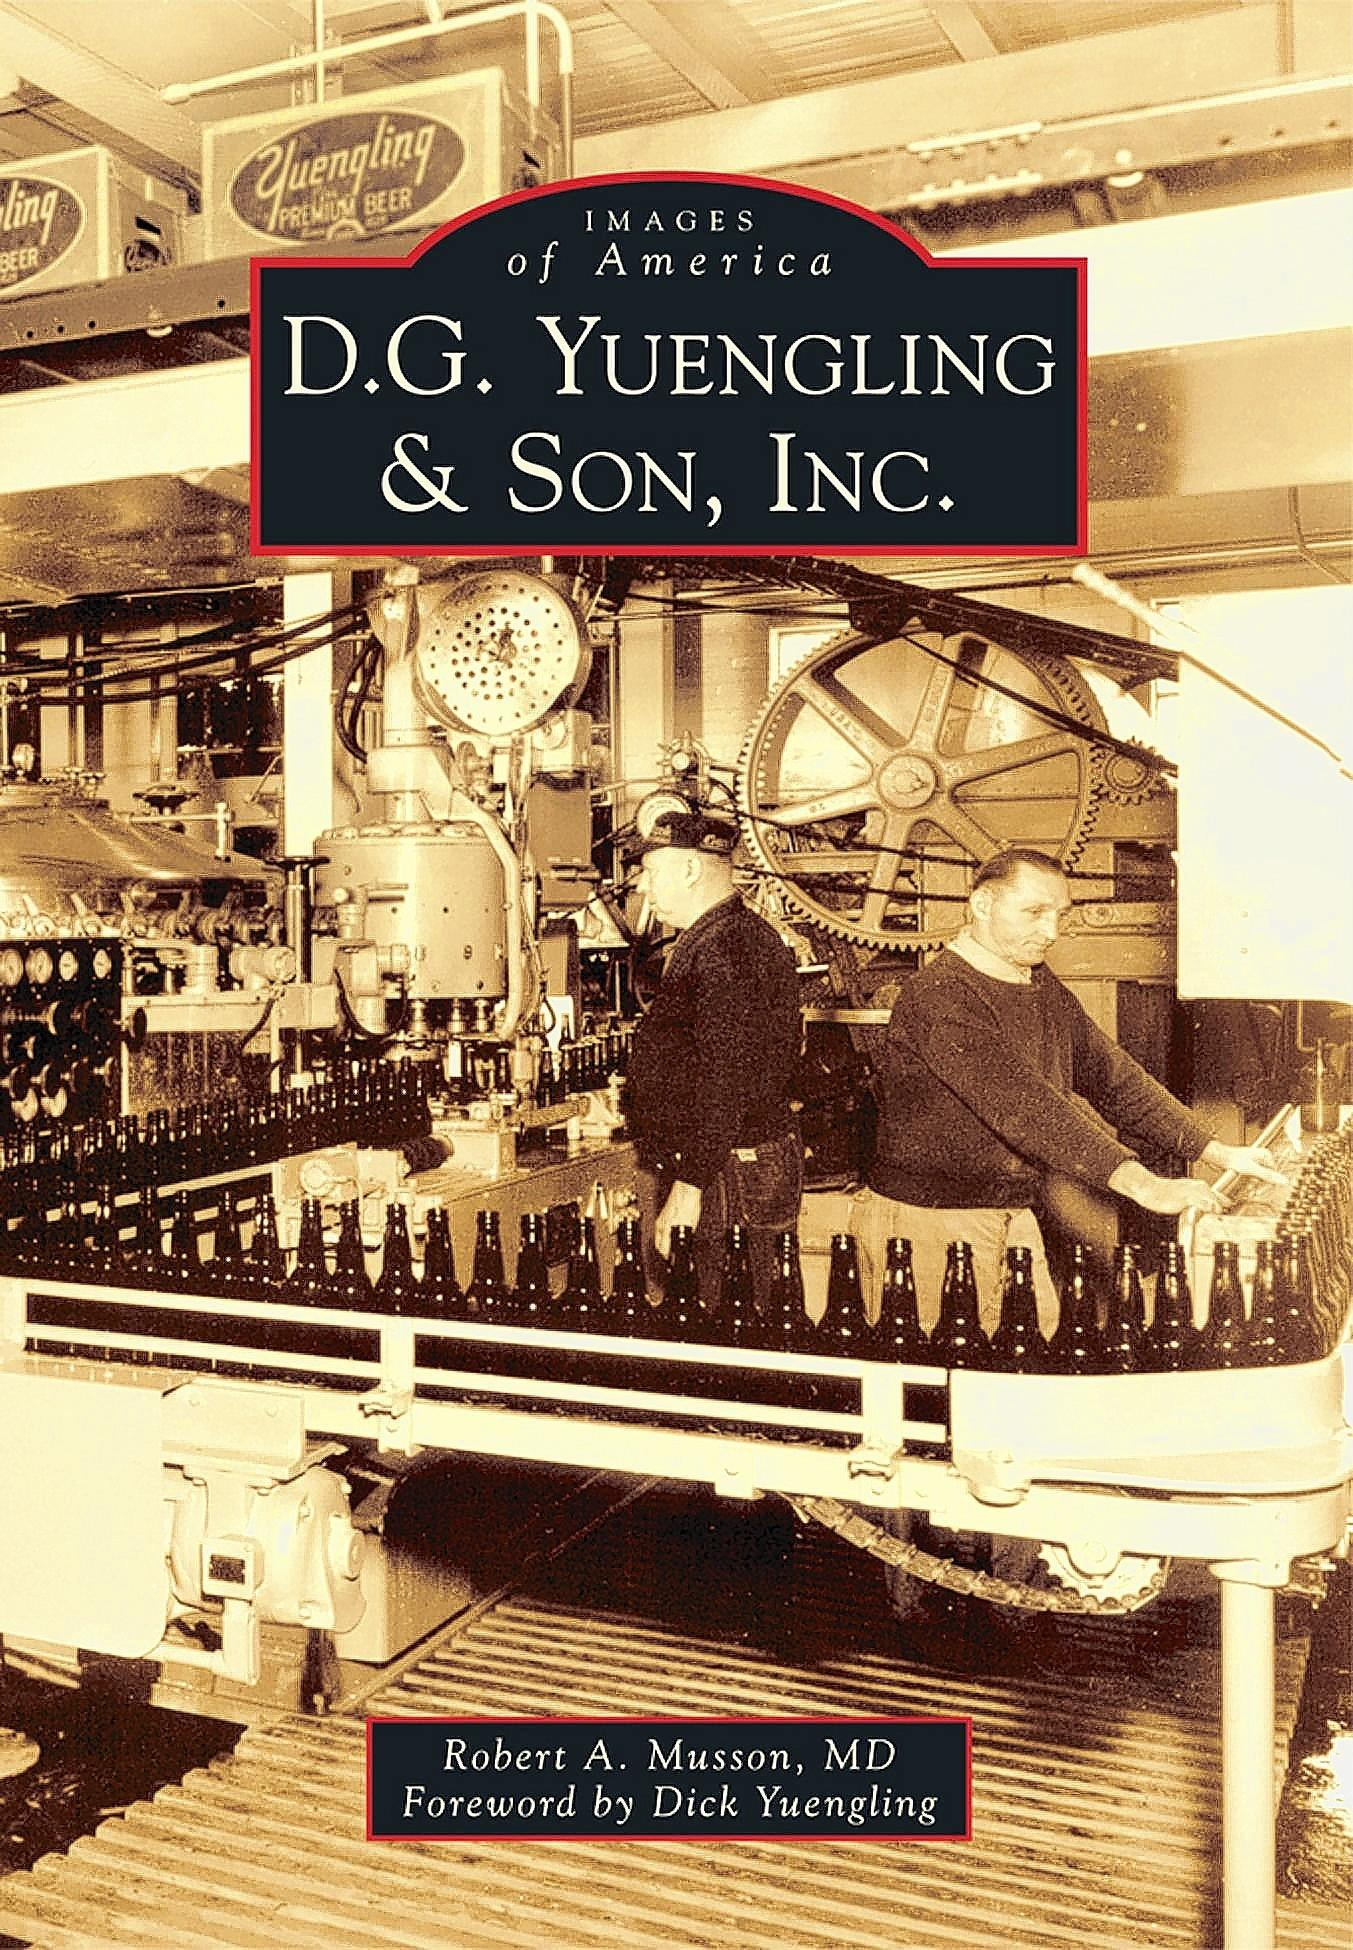 'D.G. Yuengling & Son, Inc'. by Robert A Musson